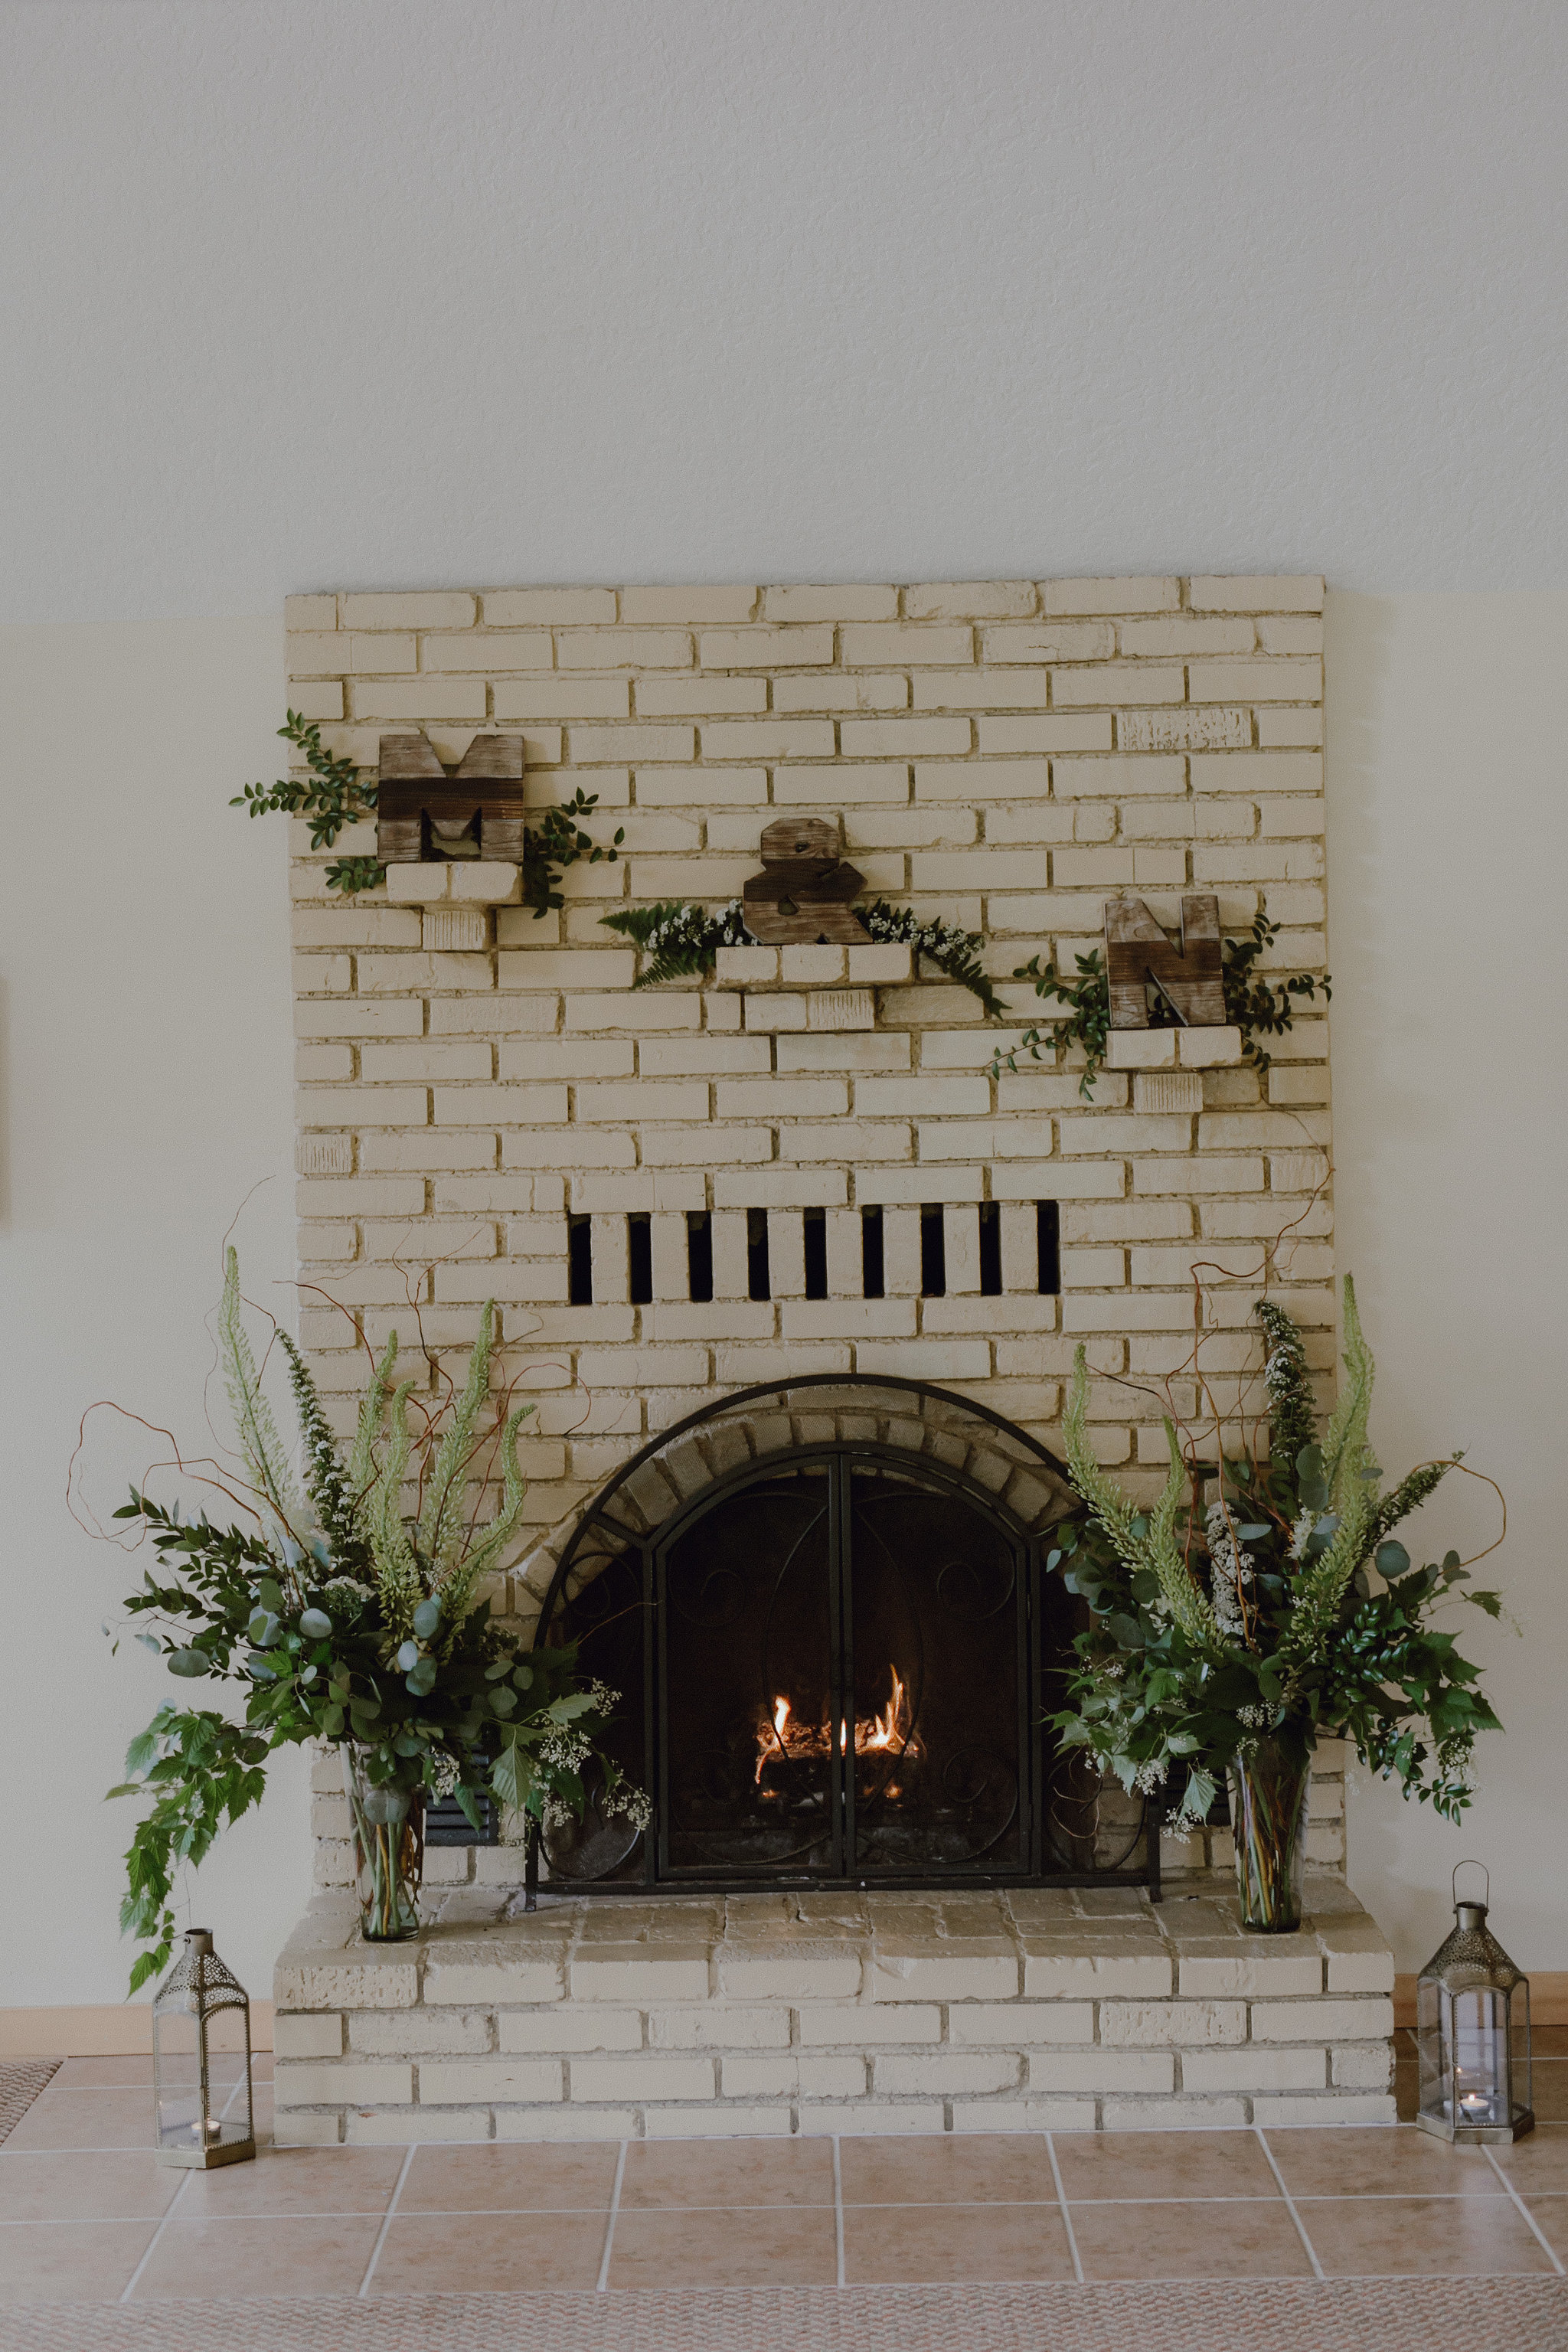 Passionflower Design in Eugene provided all of the flowers and greenery for the wedding, and they left me with a big bucket of extras so I had fun adding extra greenery to the cake table and the fireplace!